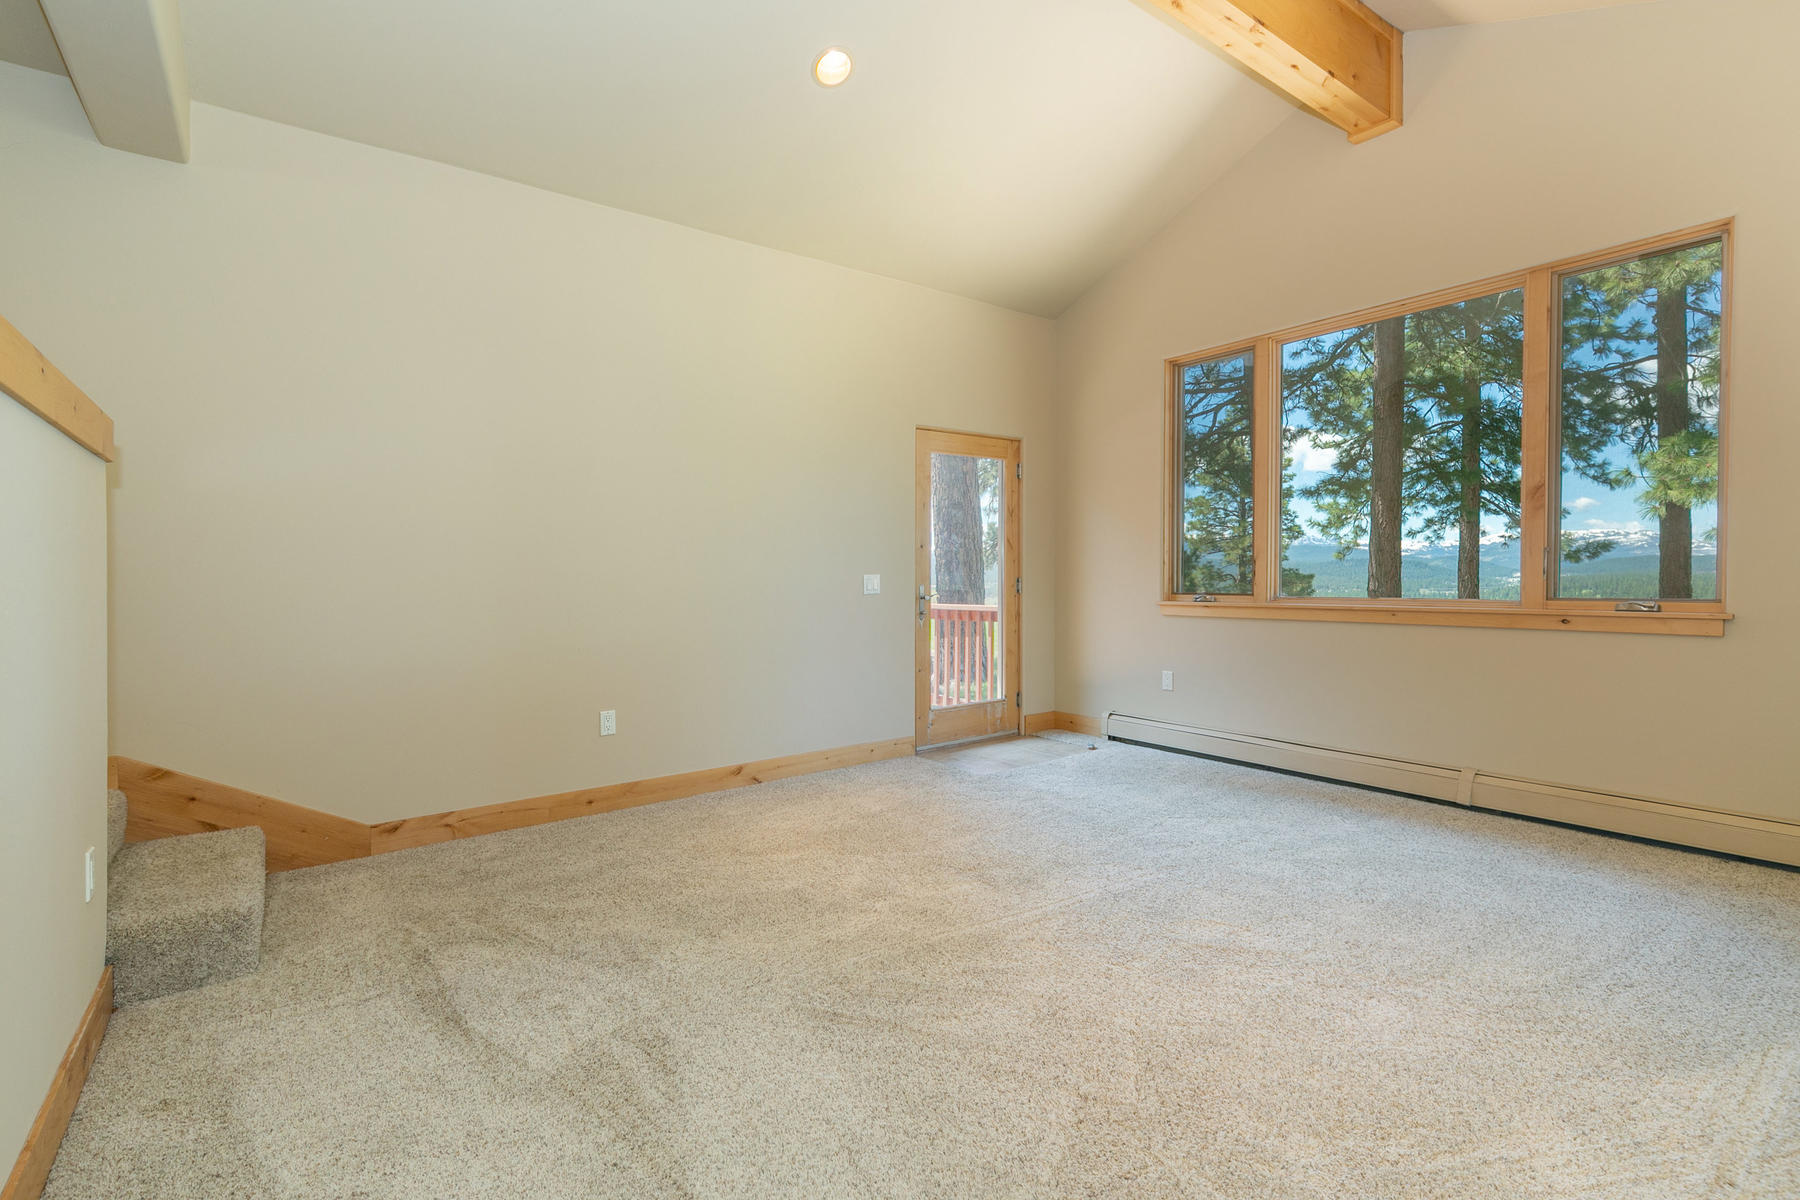 Additional photo for property listing at 14518 Royal Way, Truckee, CA 14518 Royal Way Truckee, California 96161 United States